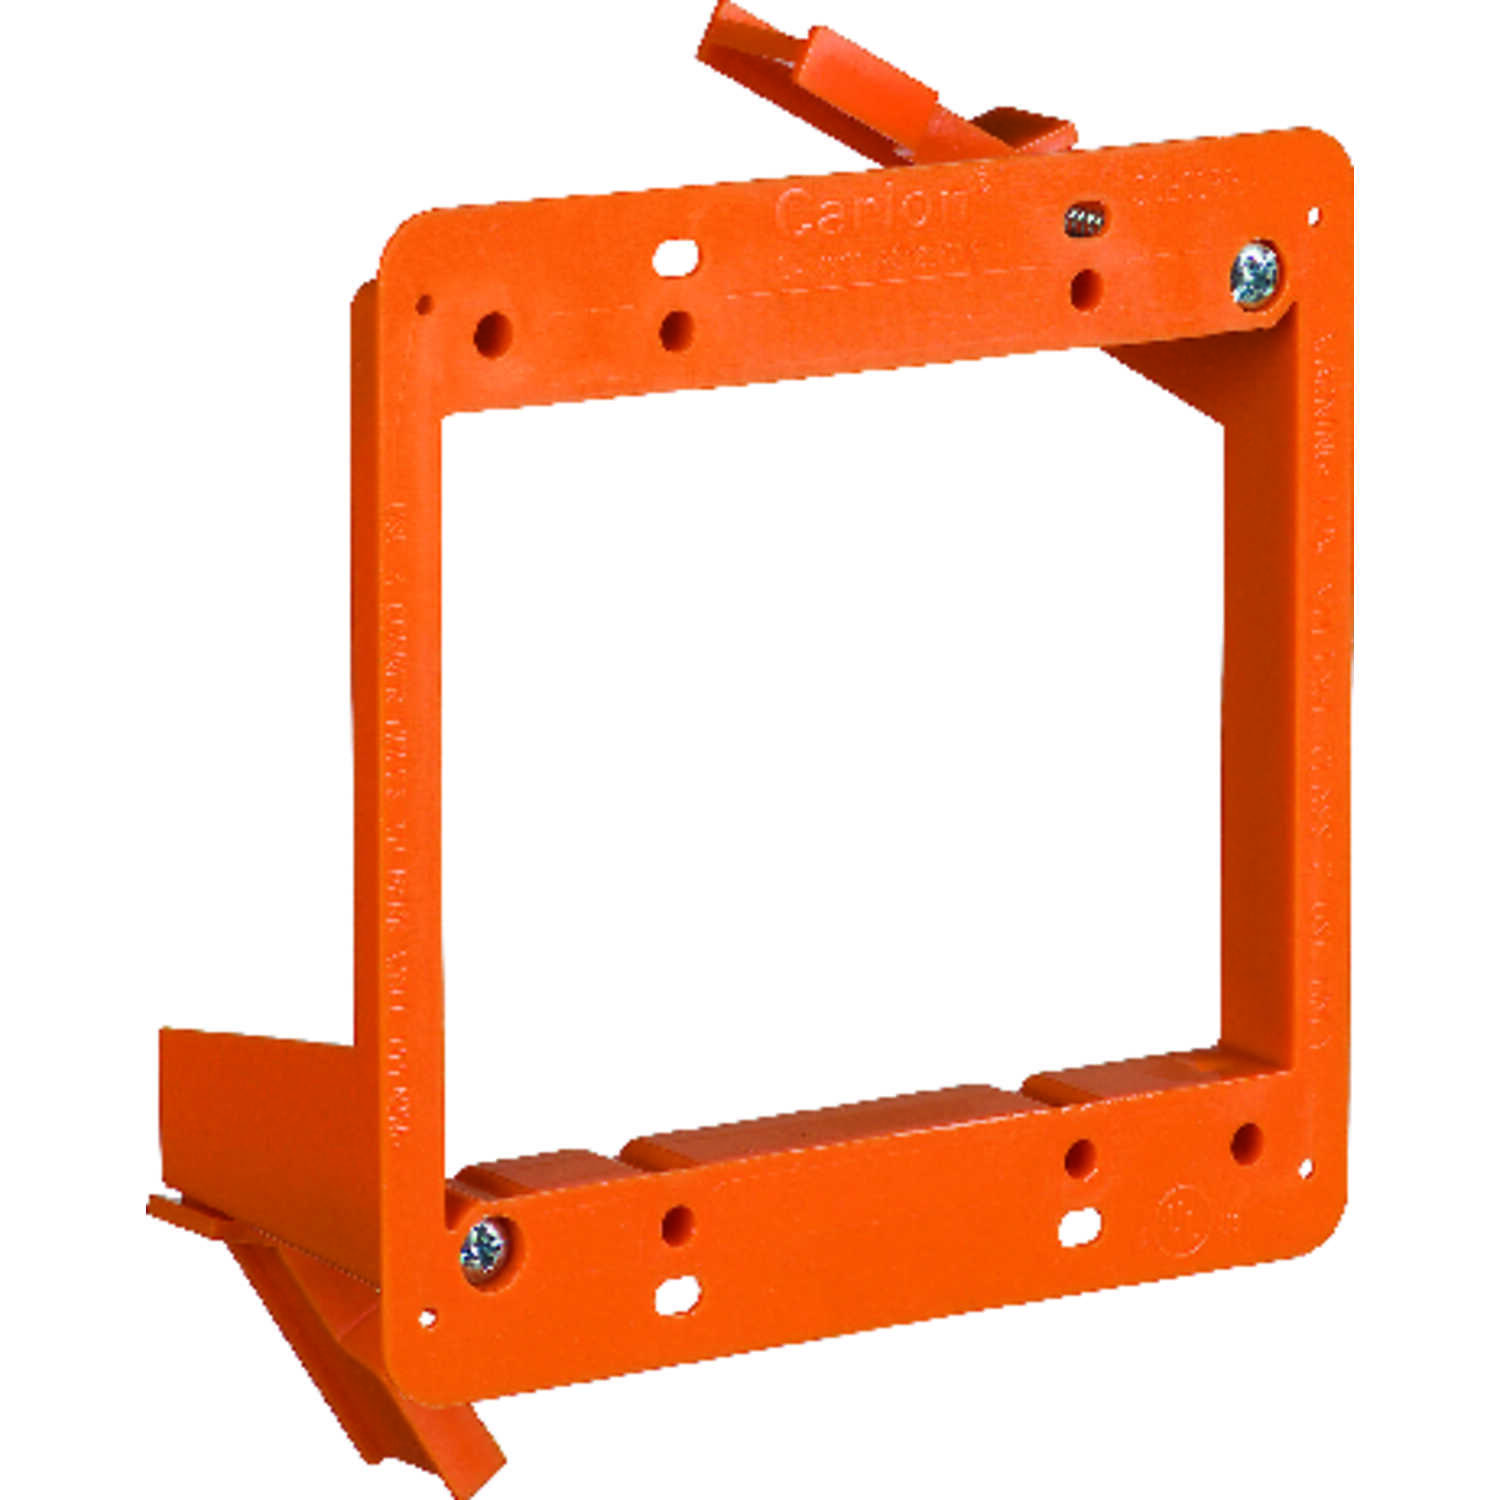 Carlon  4.25 in. PVC  2 gang Low Voltage Mounting Bracket  Orange  4.28 in. L Rectangle